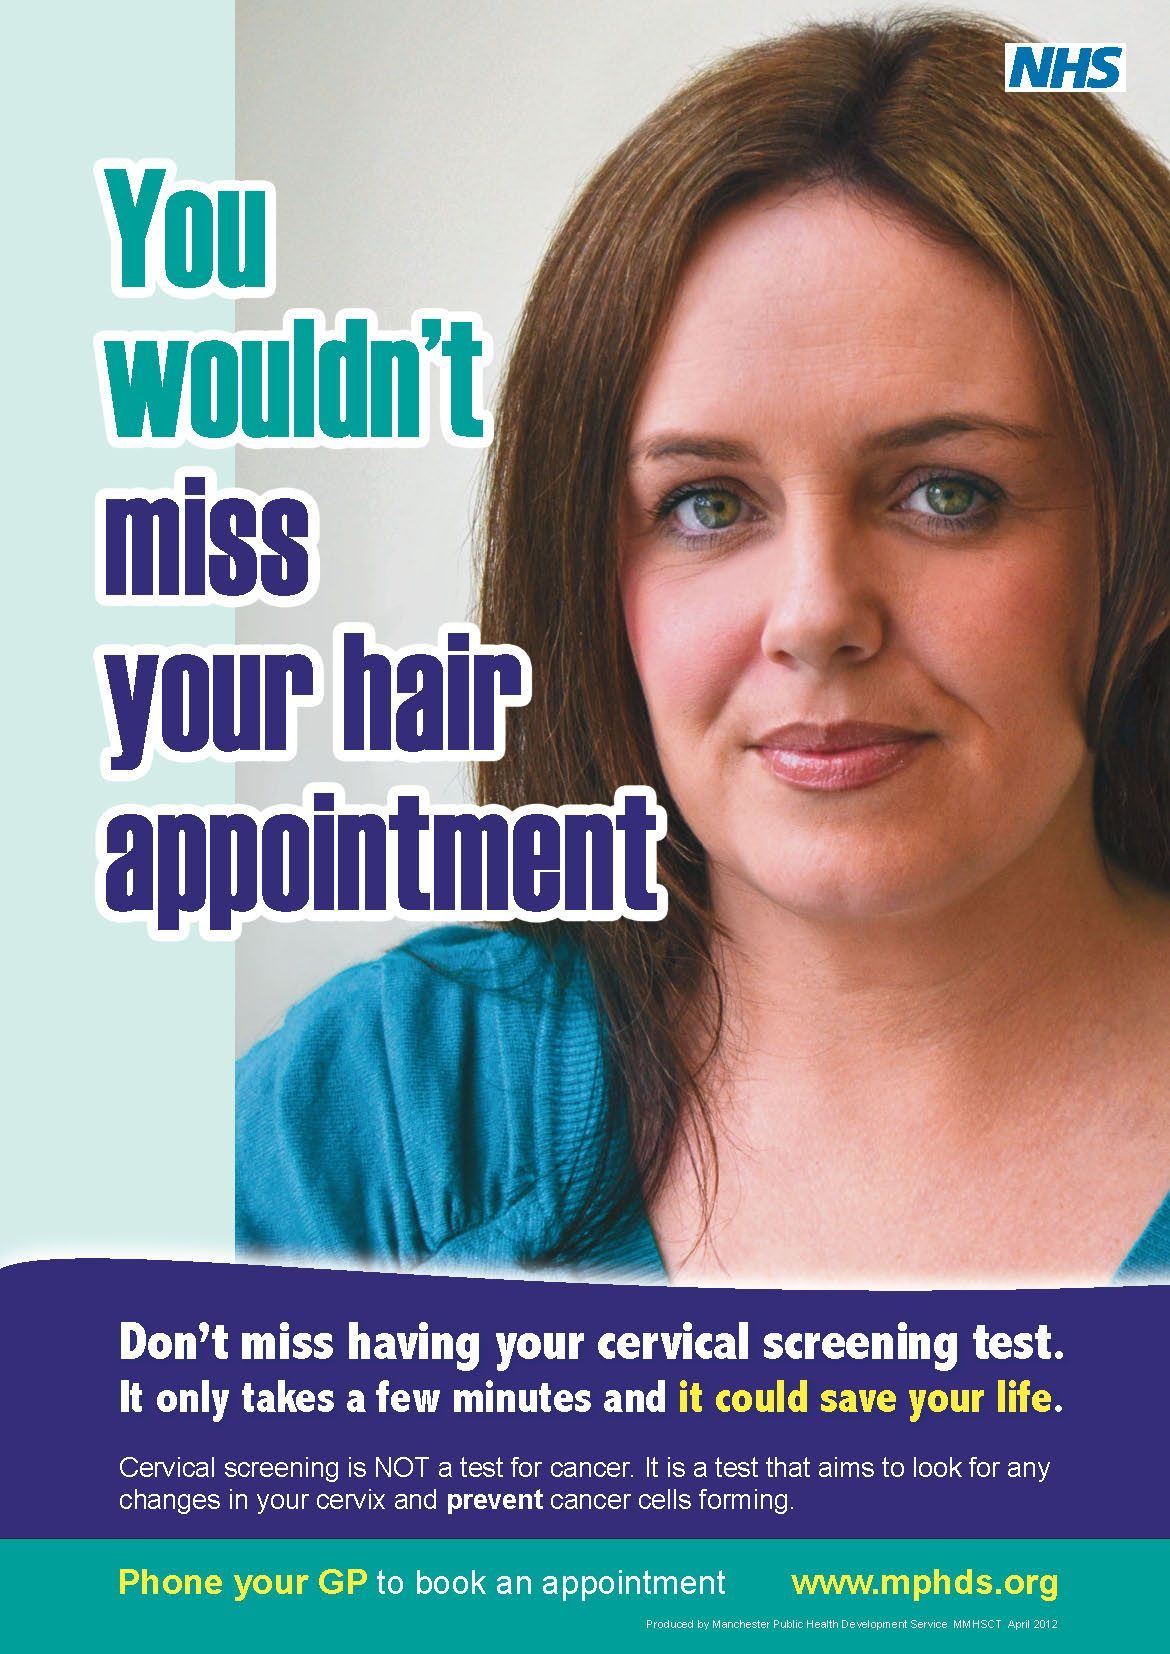 Cervical Screening awareness poster from Manchester Public